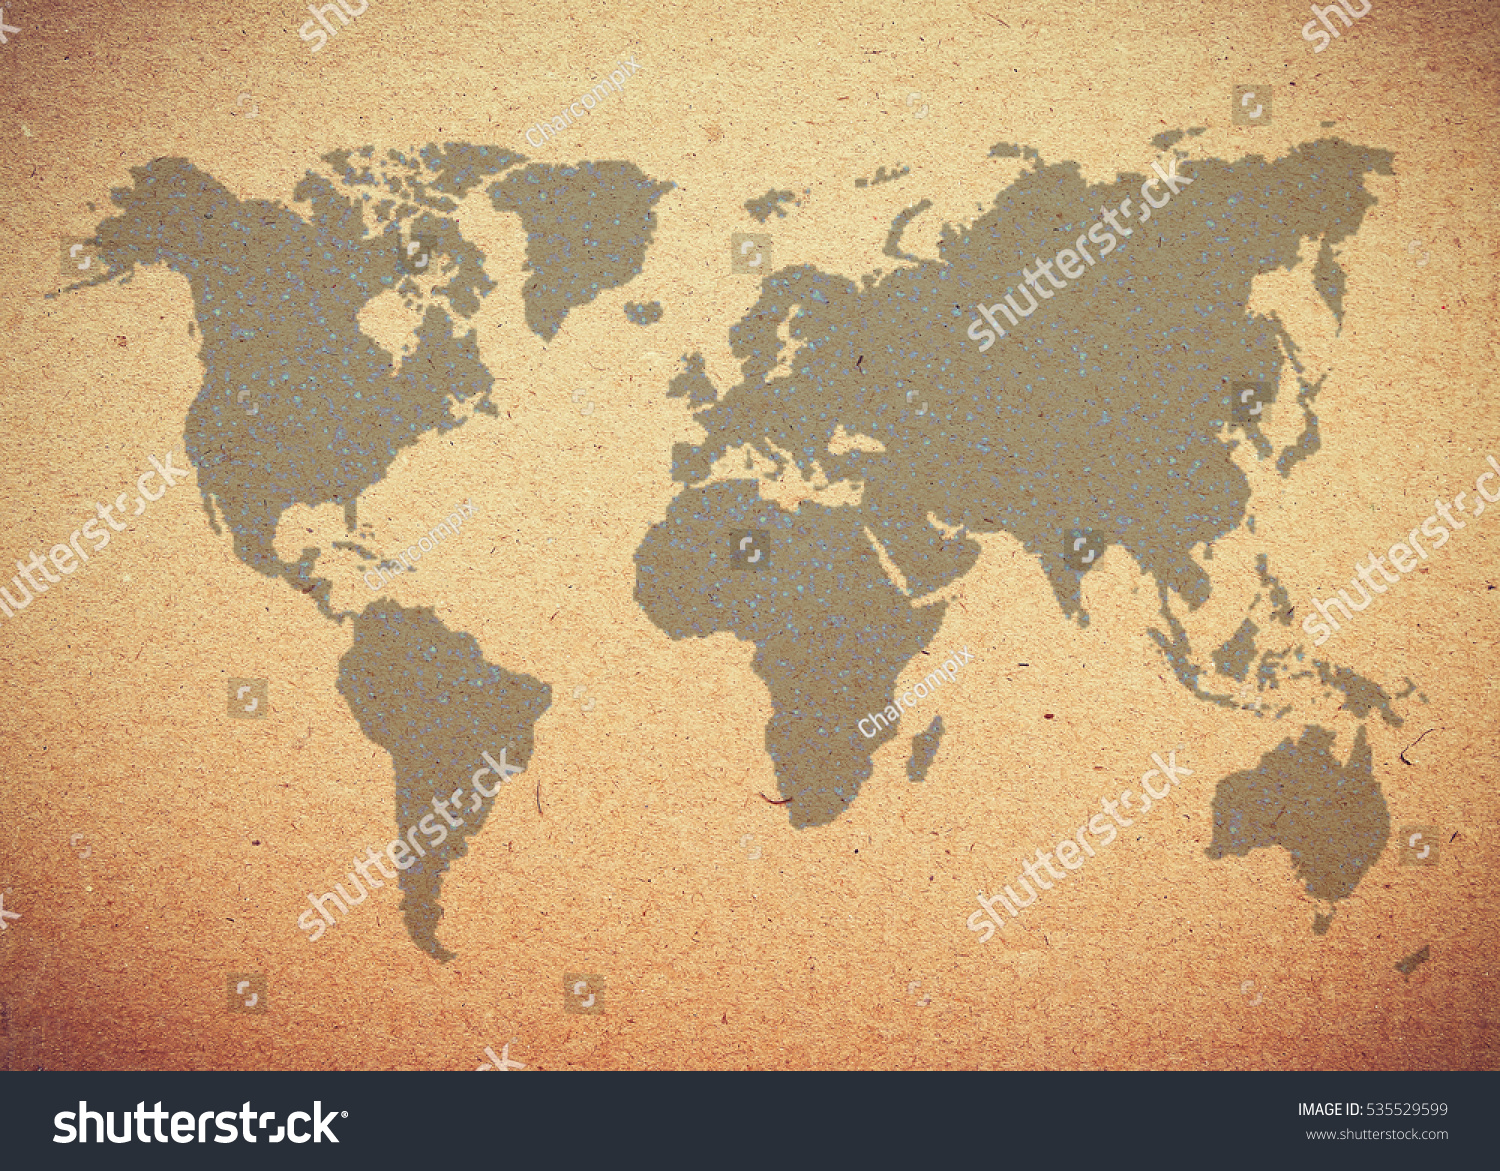 Map World On Brown Crumpled Paper Stock Illustration 535529599 ...